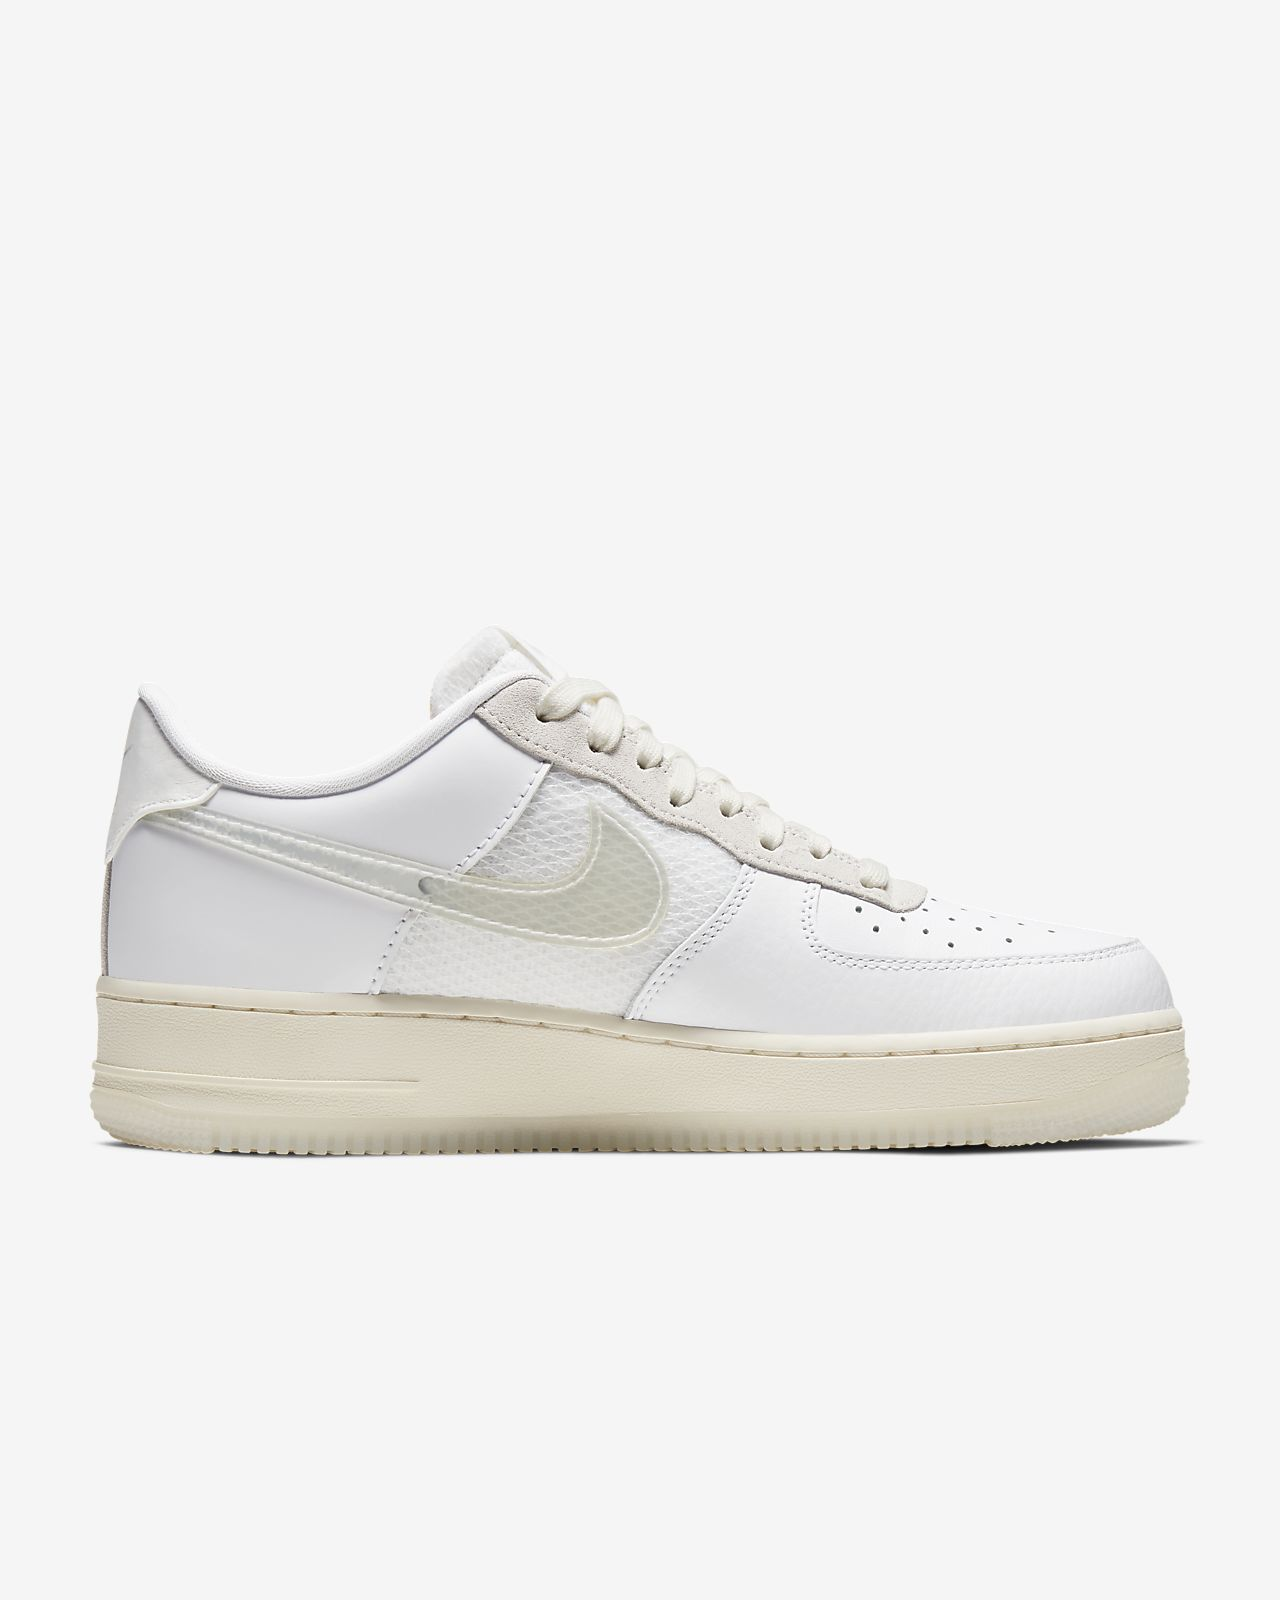 Best Nike Air Force 1 07 Lv8 Suede of 2020 Top Rated